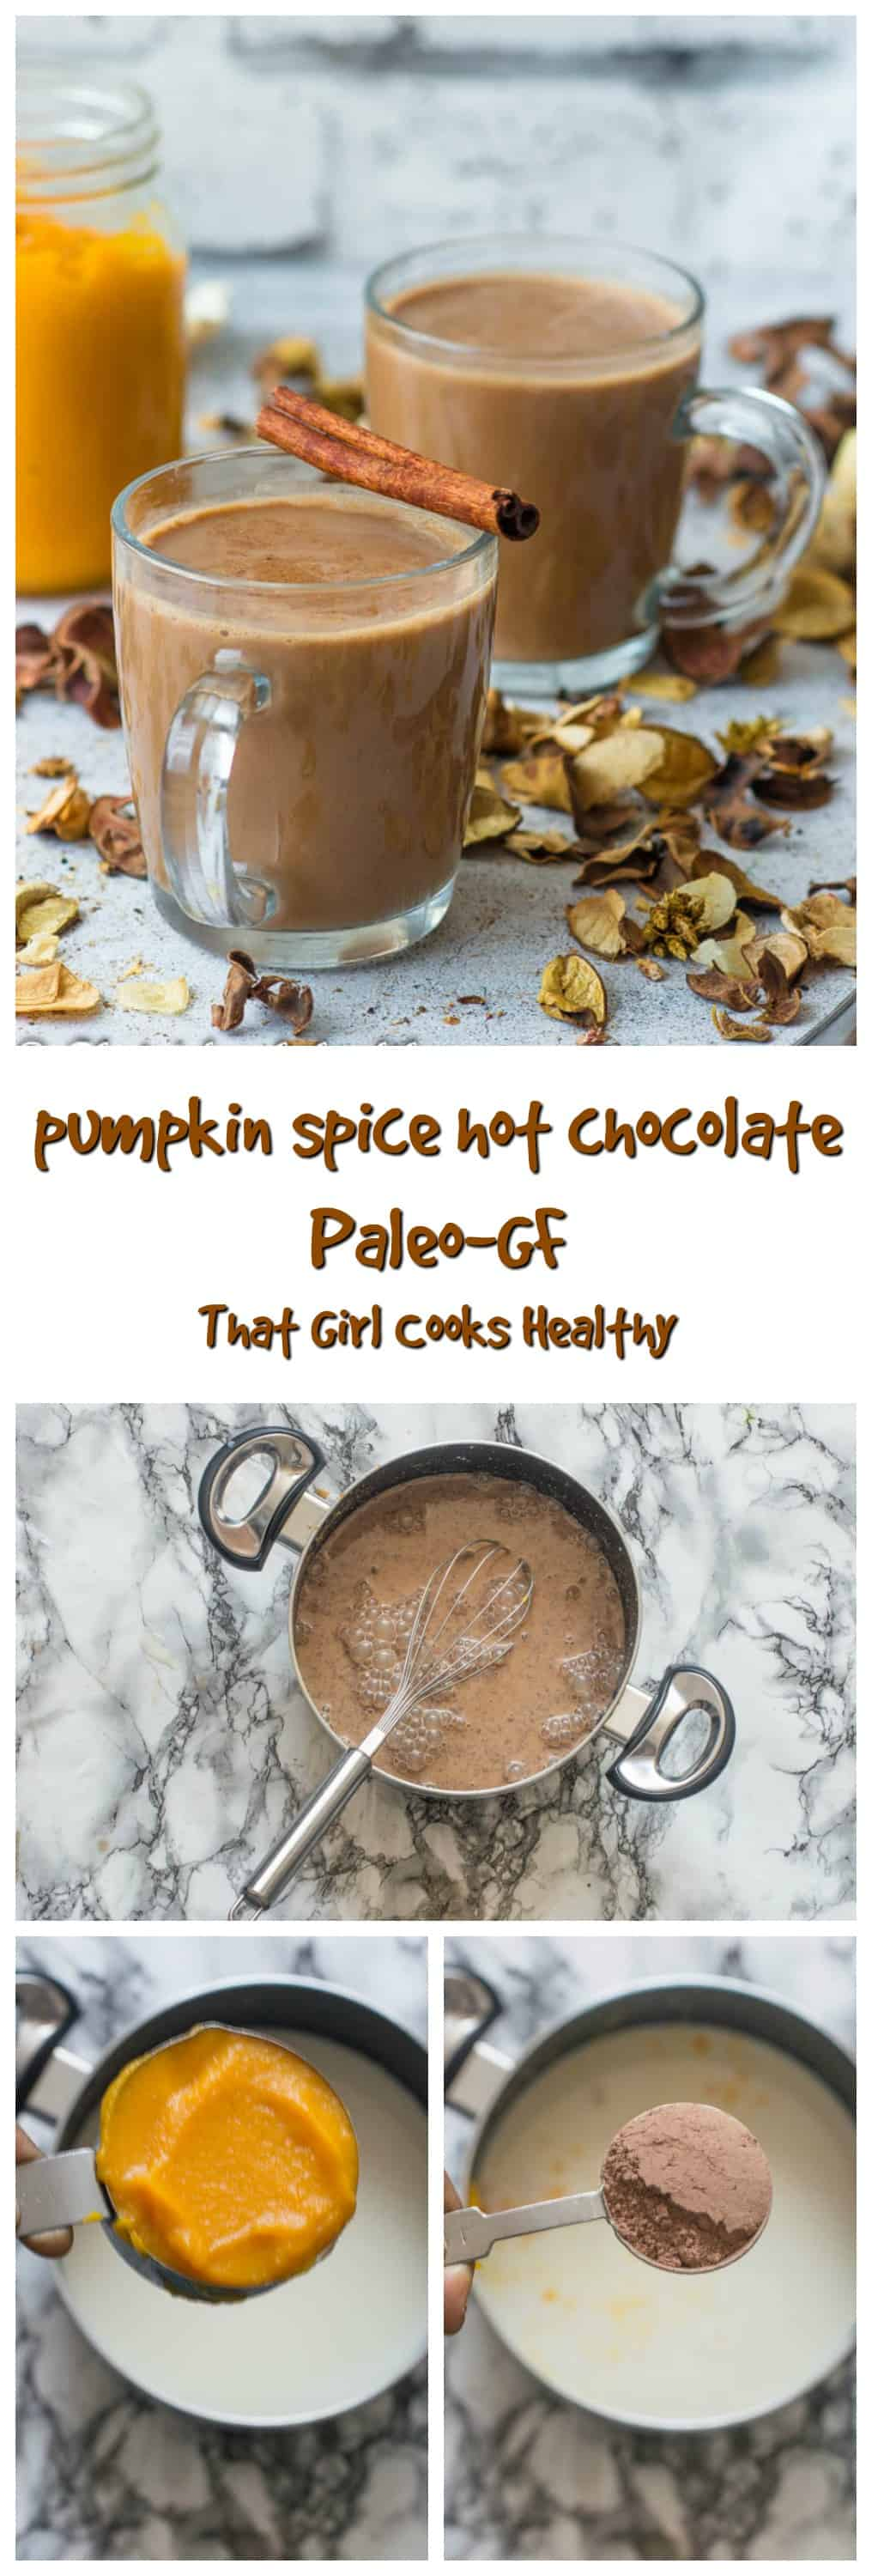 Embrace the fall with this tasty veganized pumpkin spice hot chocolate